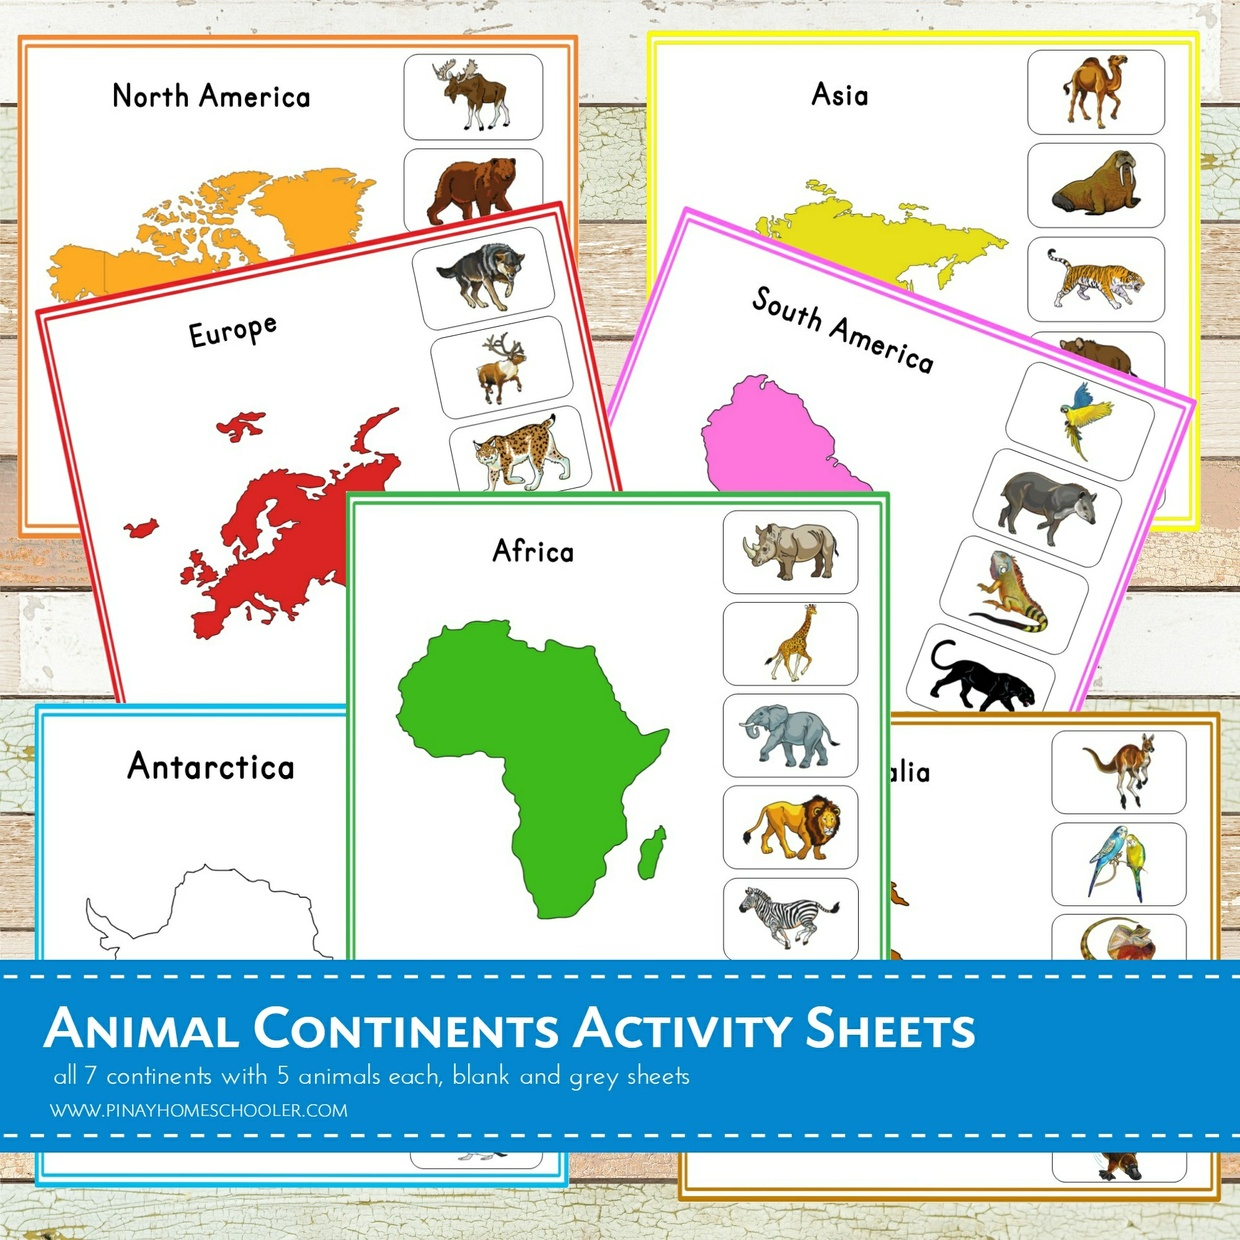 Animal Continents Activity Sheets